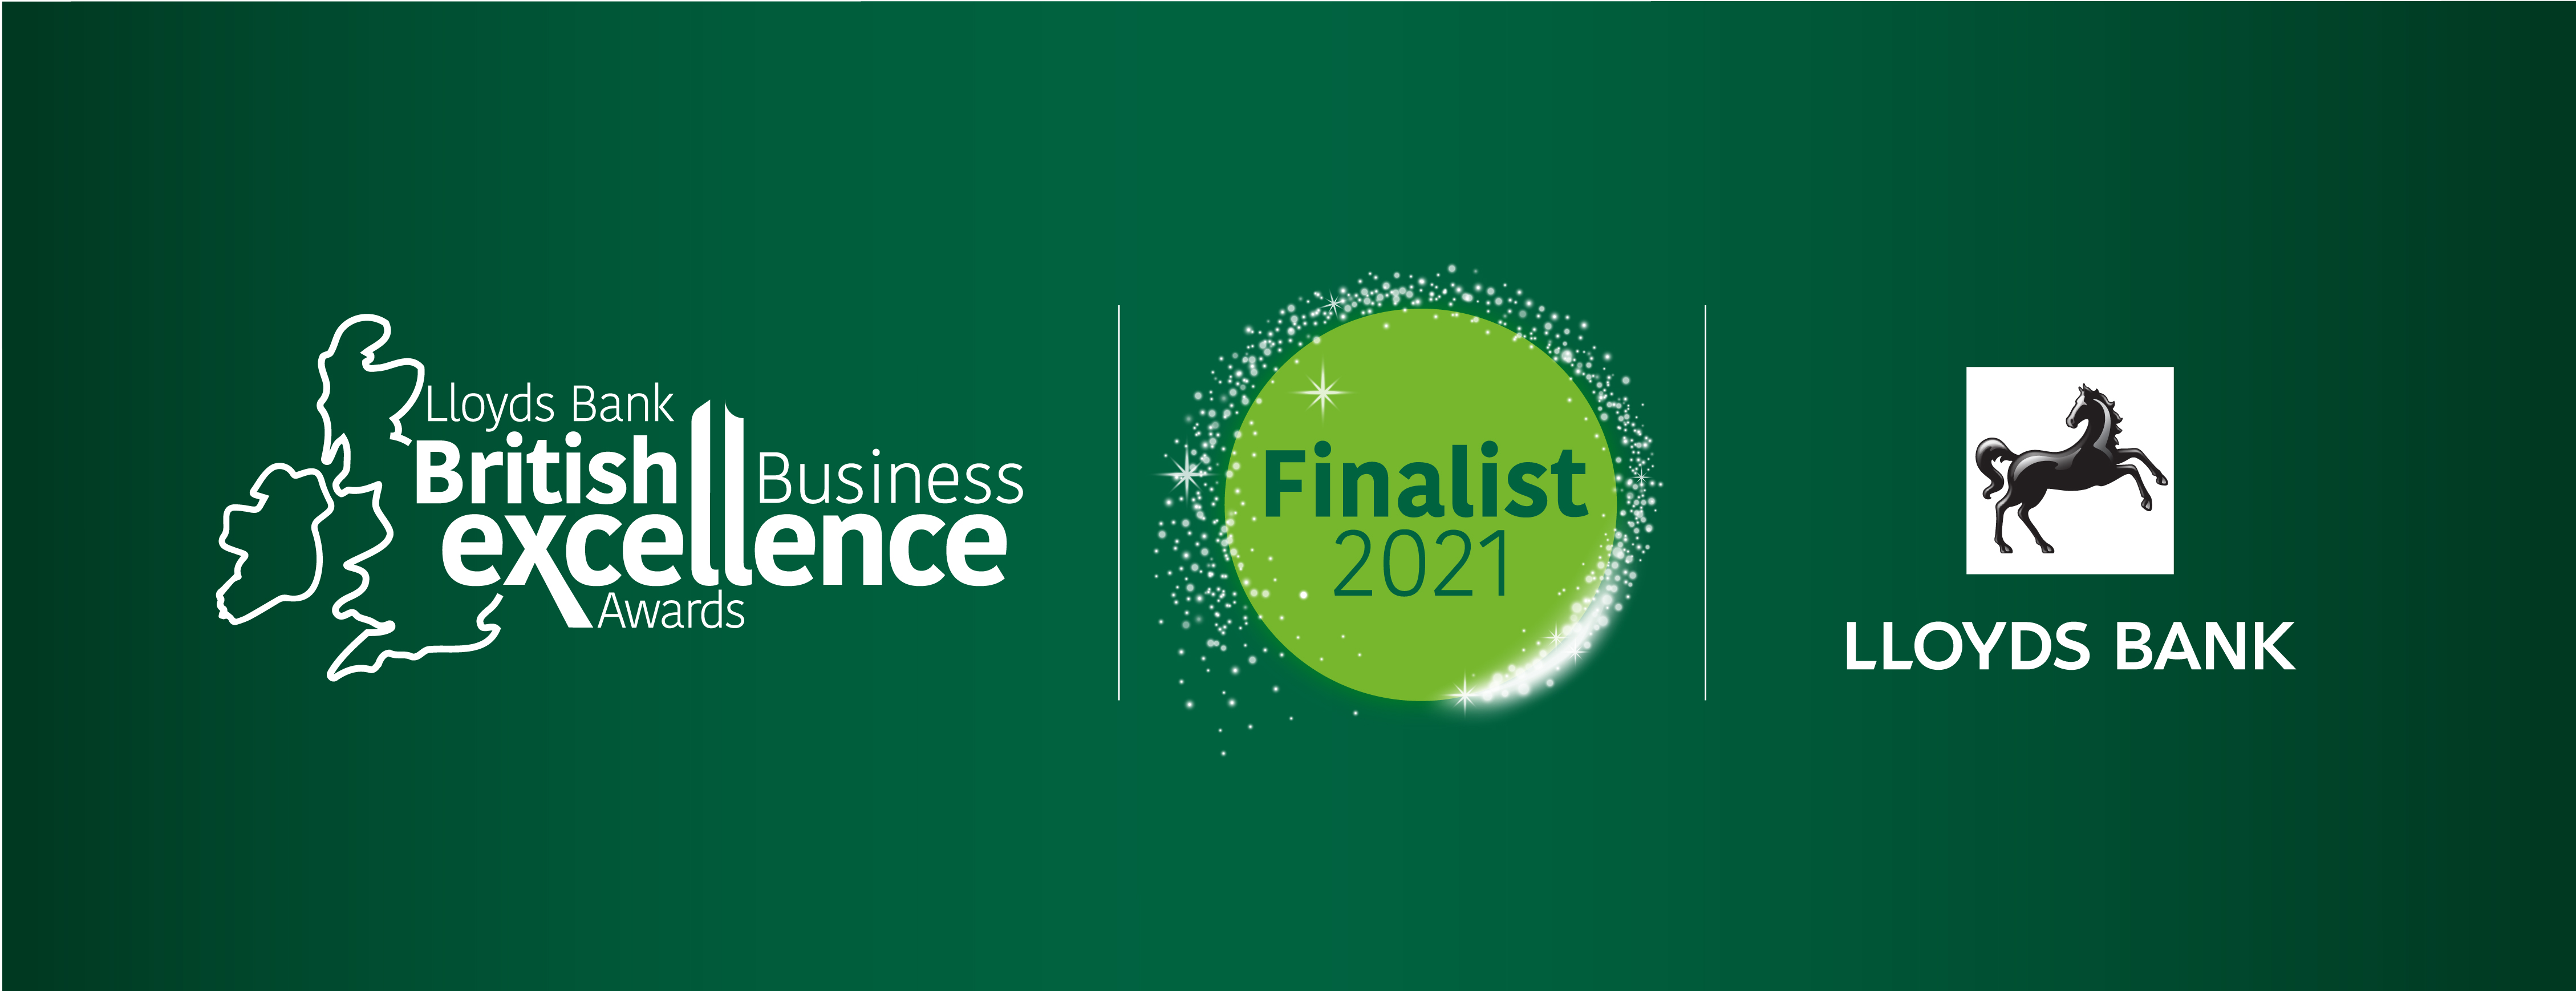 British Business Excellence Awards 2021